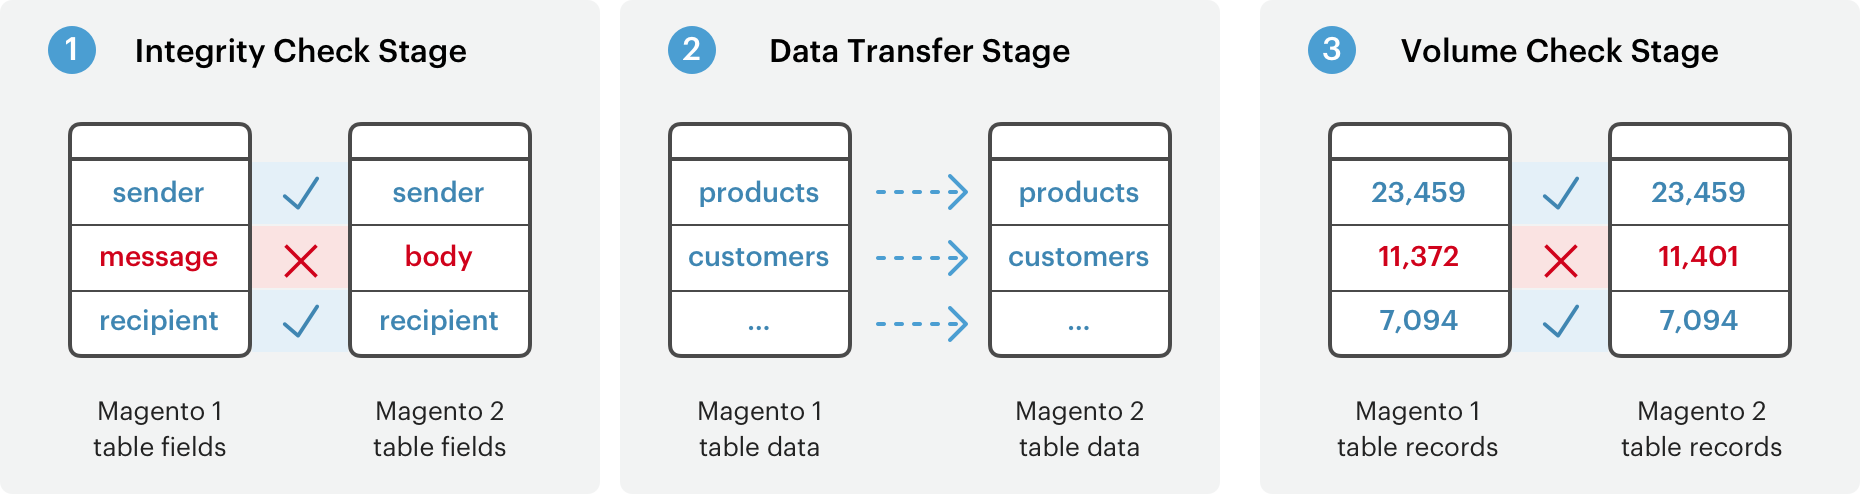 Magento-data-migration-tool-stages